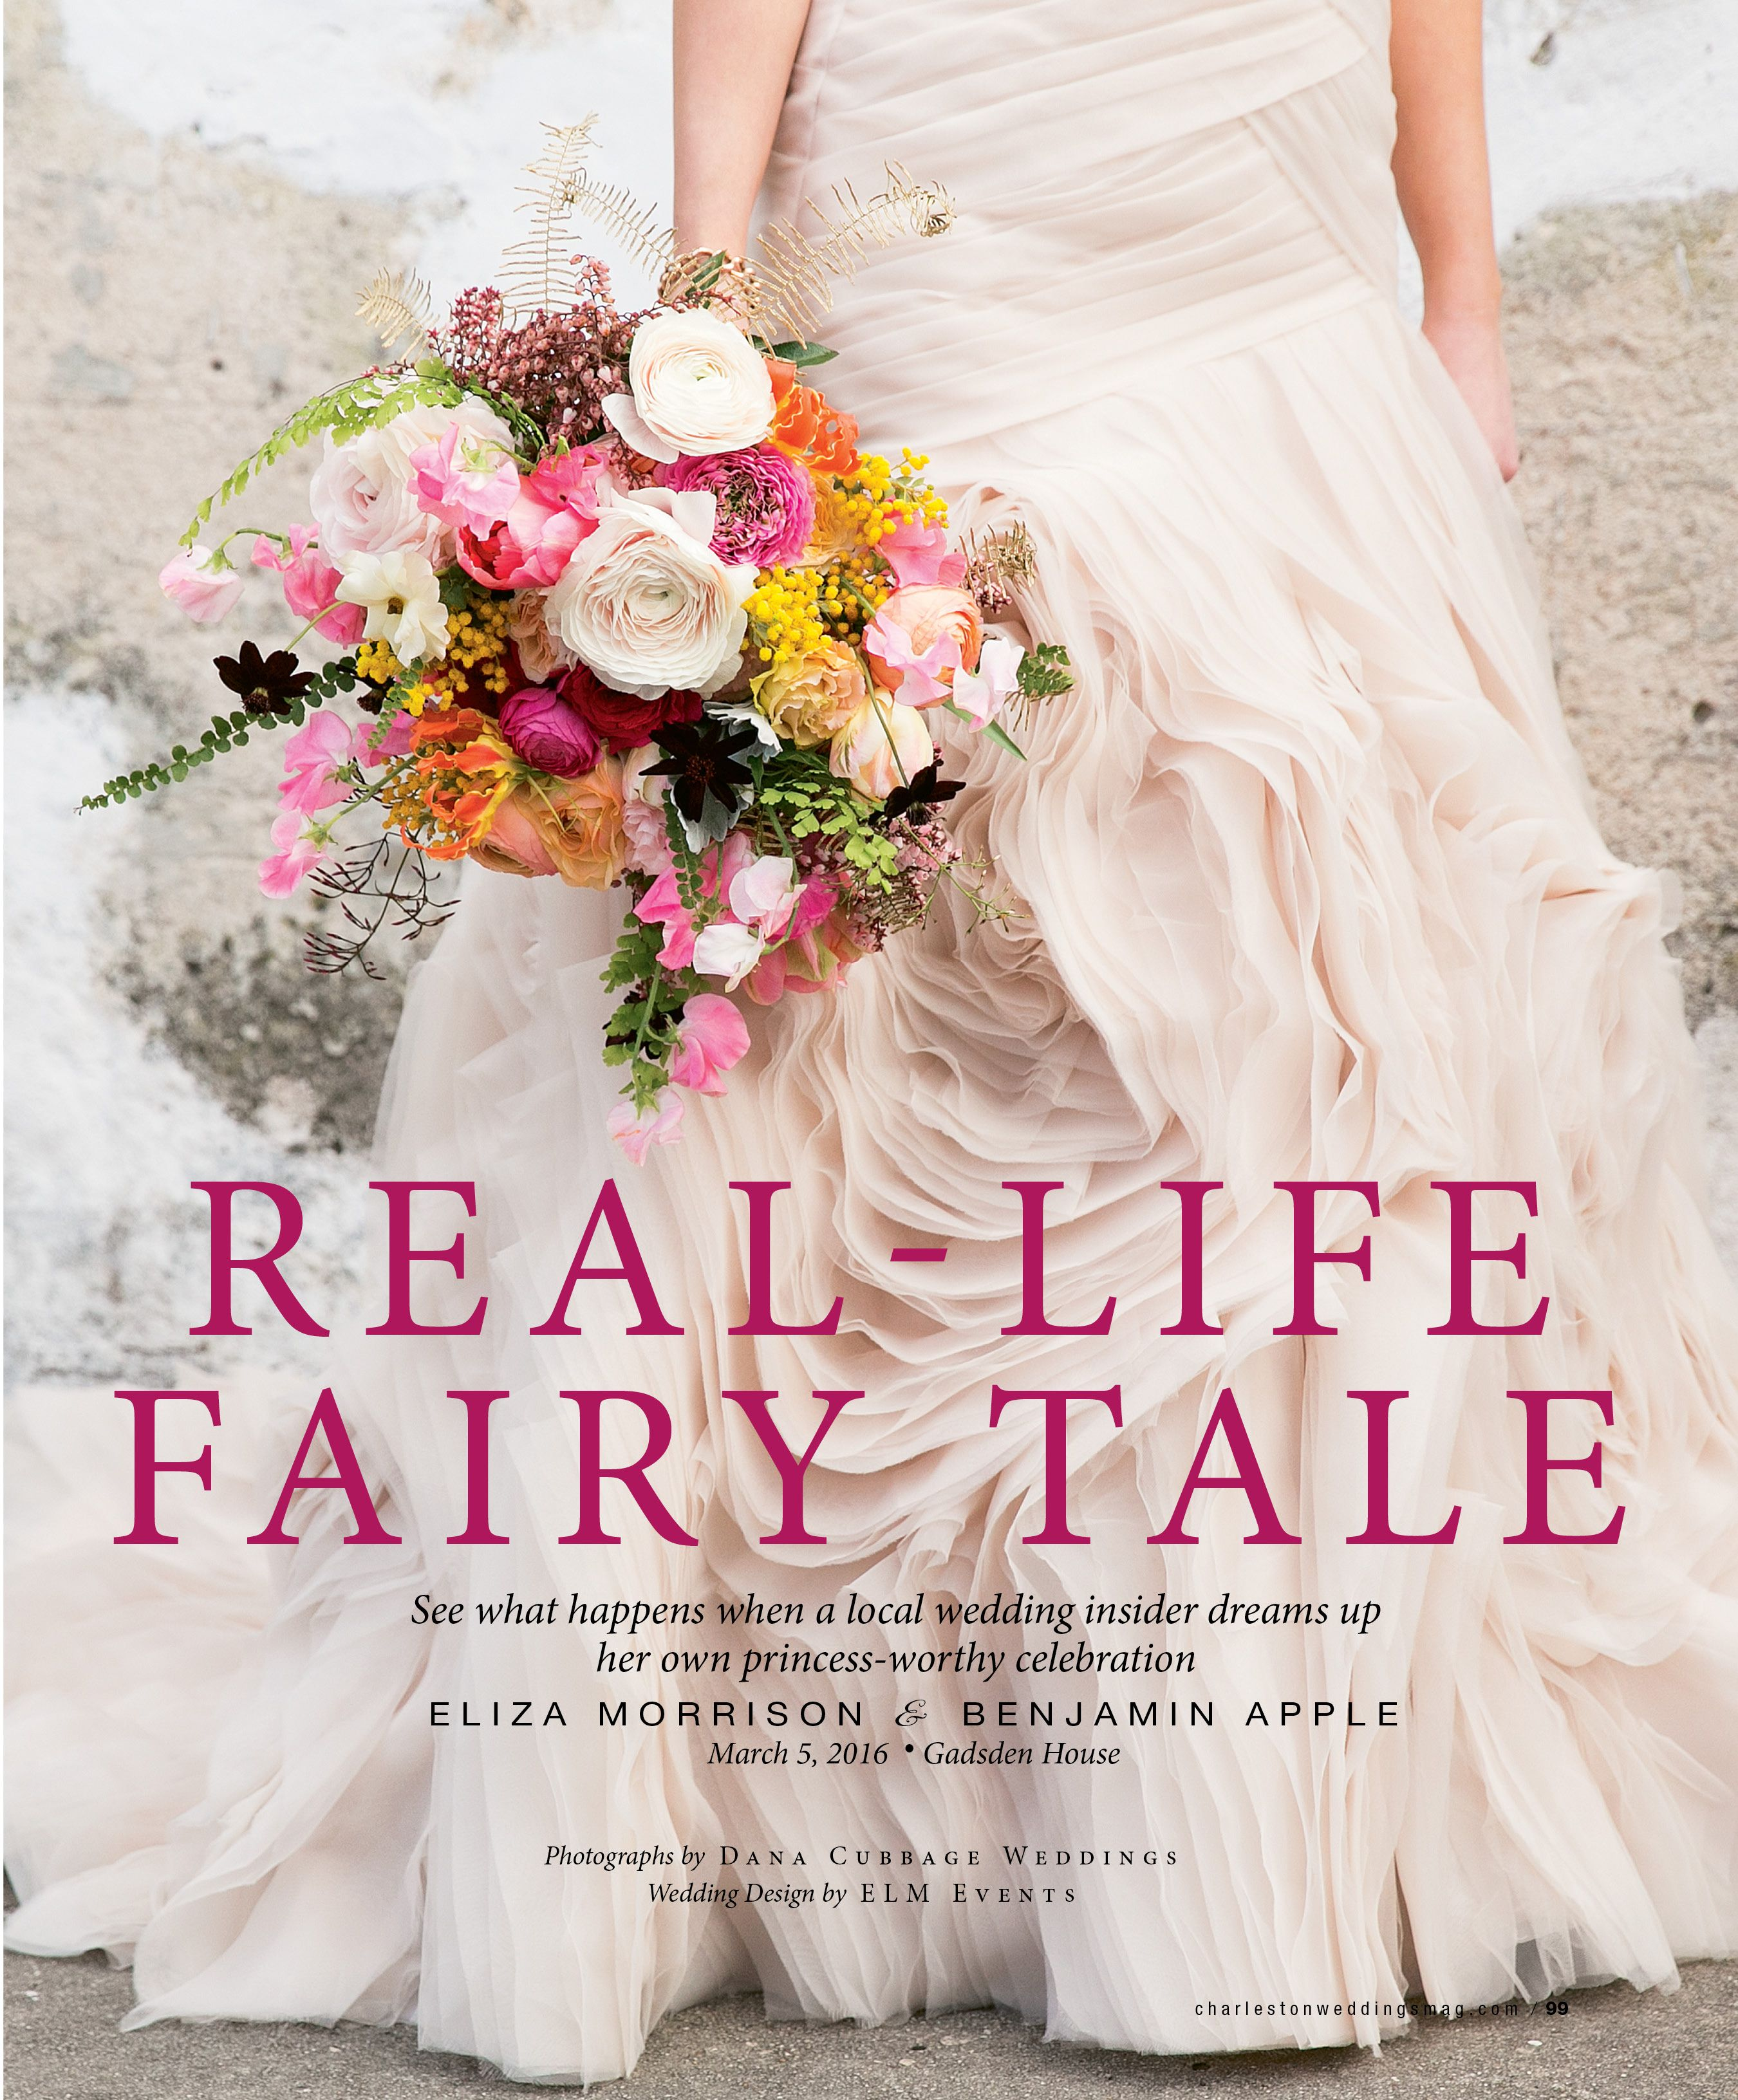 Our Lovely Bride Eliza On The Cover Of Charleston Weddings